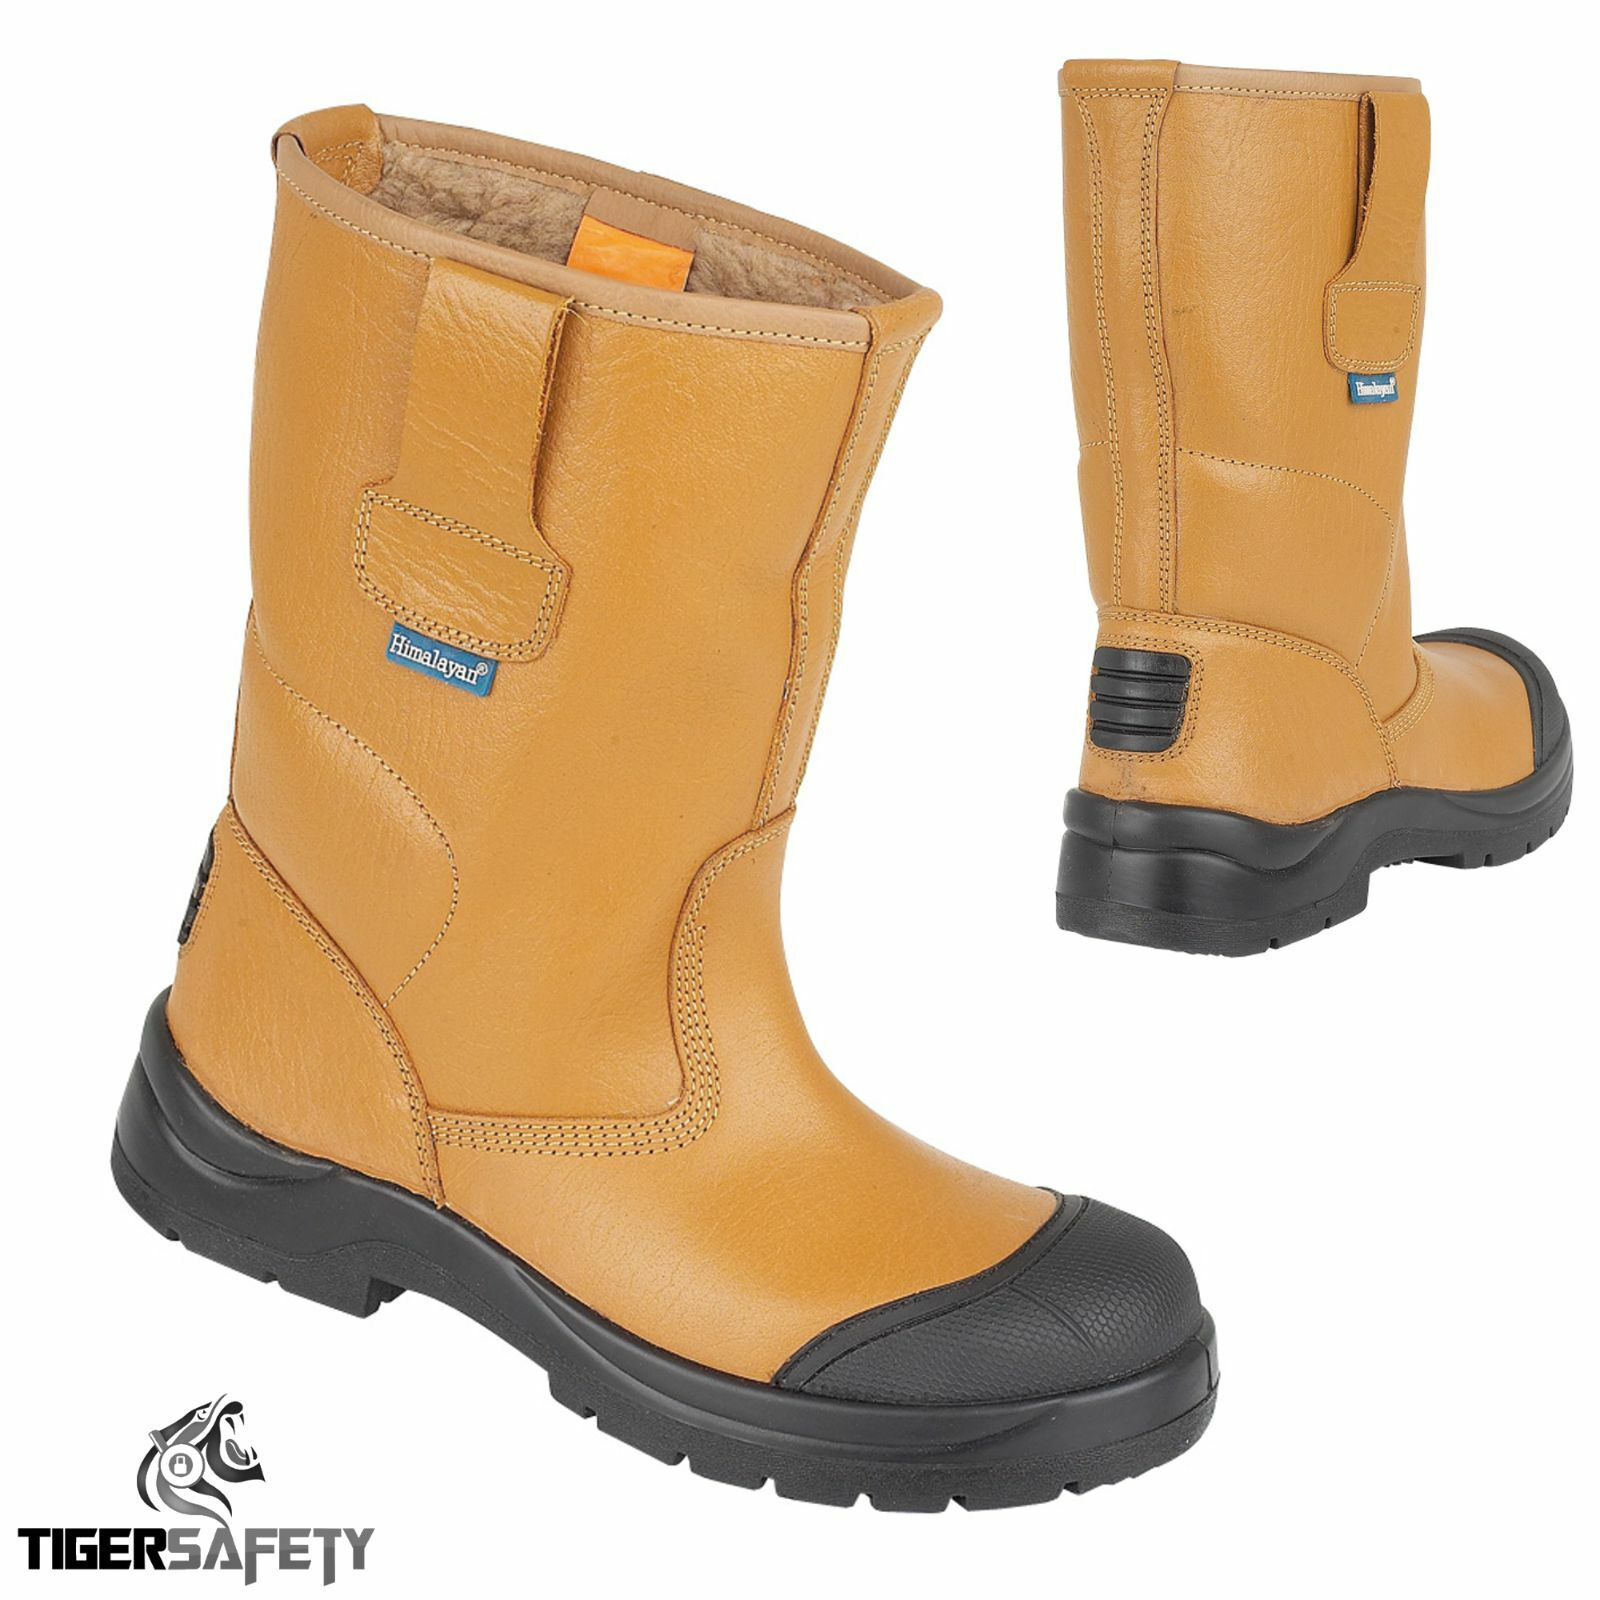 Himalayan 9102 Tan Warm Lined HyGrip Steel Toe Cap Bump Cap Safety Rigger Boots